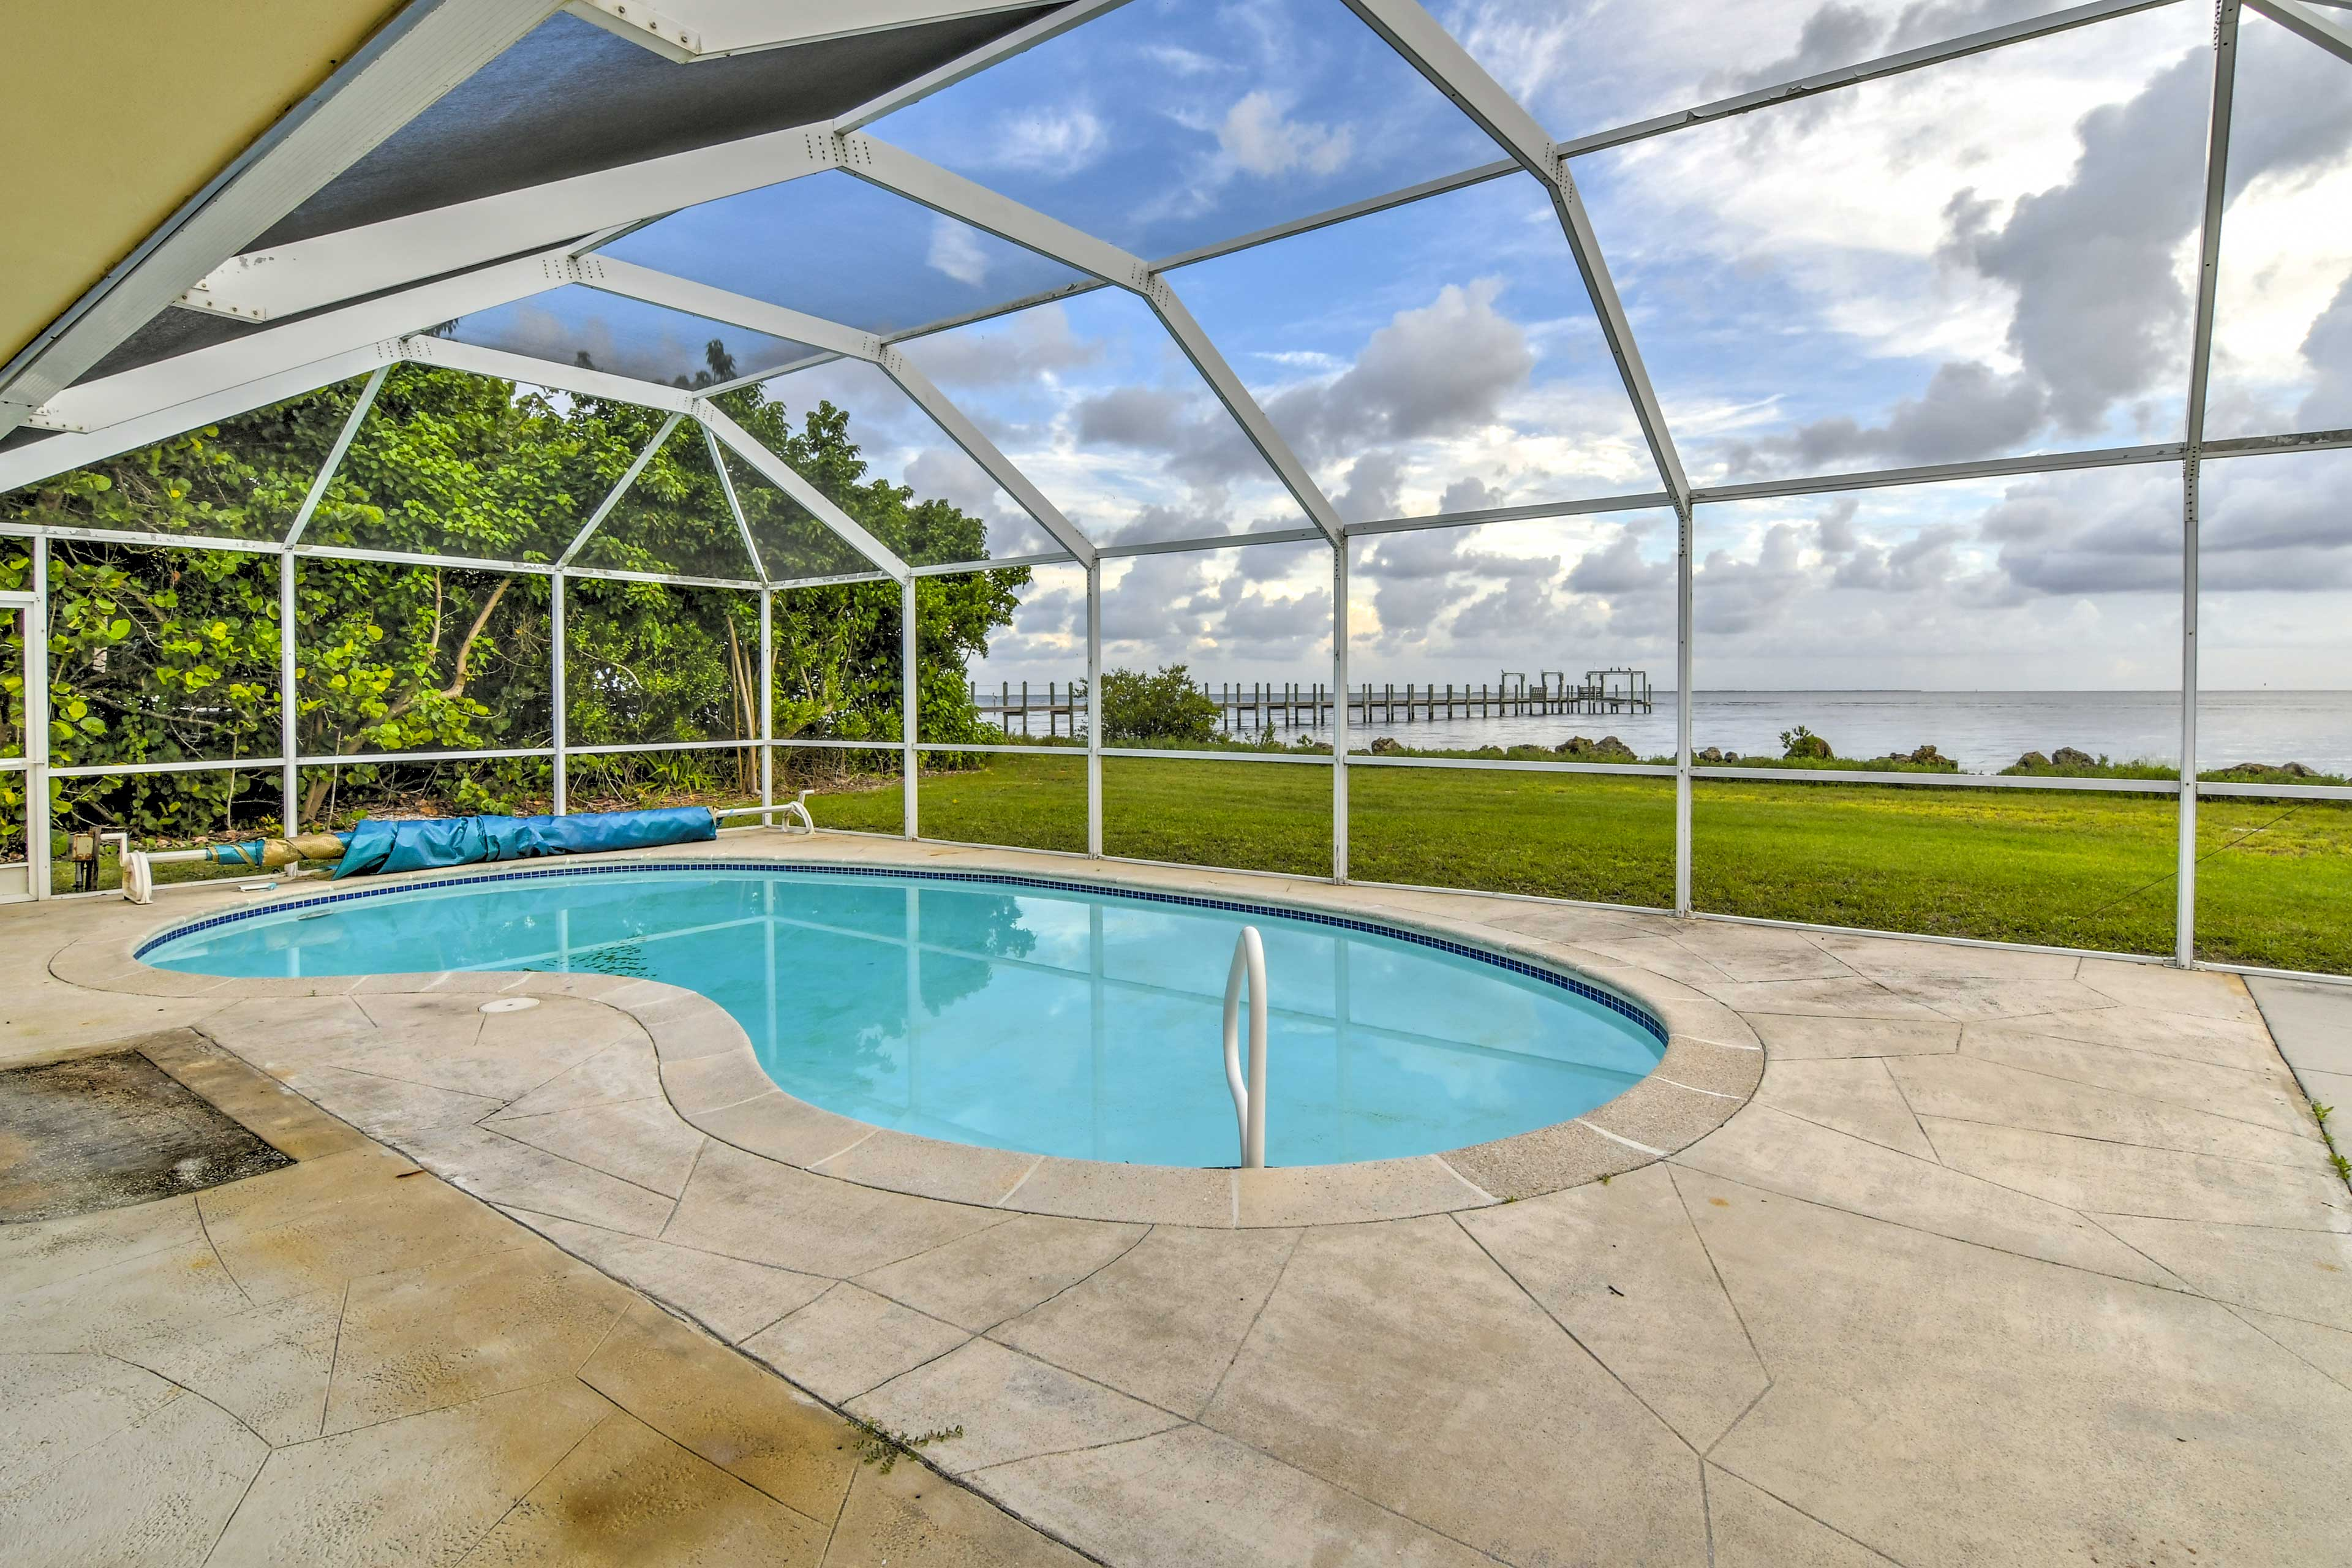 Spend the afternoon lounging next to the covered, unheated pool.